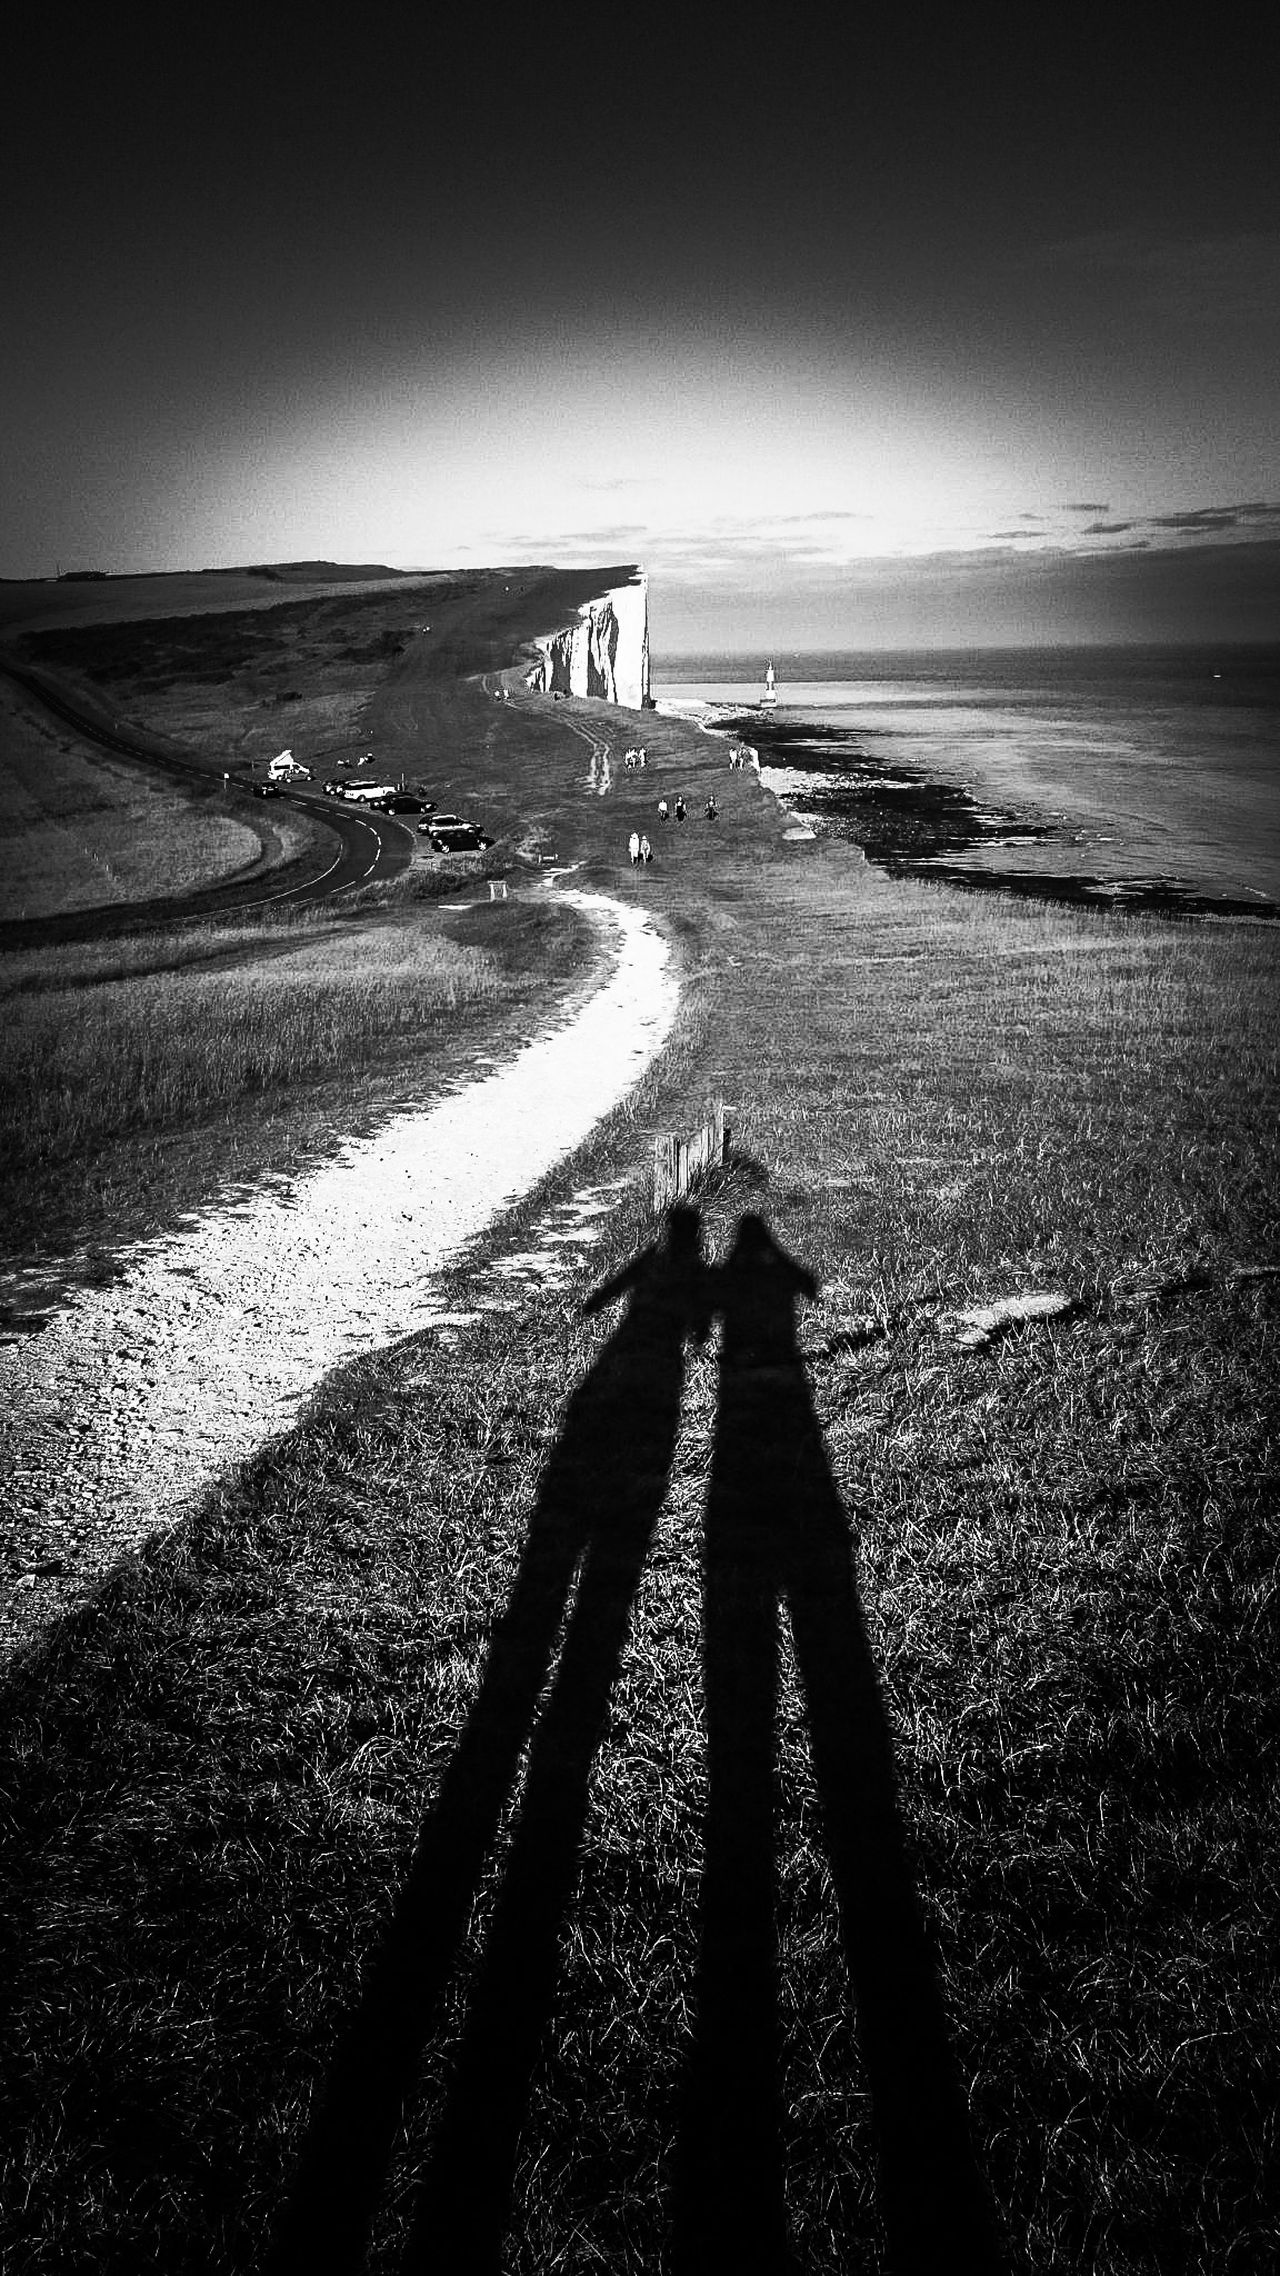 Sunlight Silhouette Sky Togetherness People Two People Outdoors Nature Grass Sunset Sunbeam Blackandwhite Photography Beach Coastline Landscape Sea Lighthouse Chalk Cliffs Beachy Head Day East Sussex The Way Forward